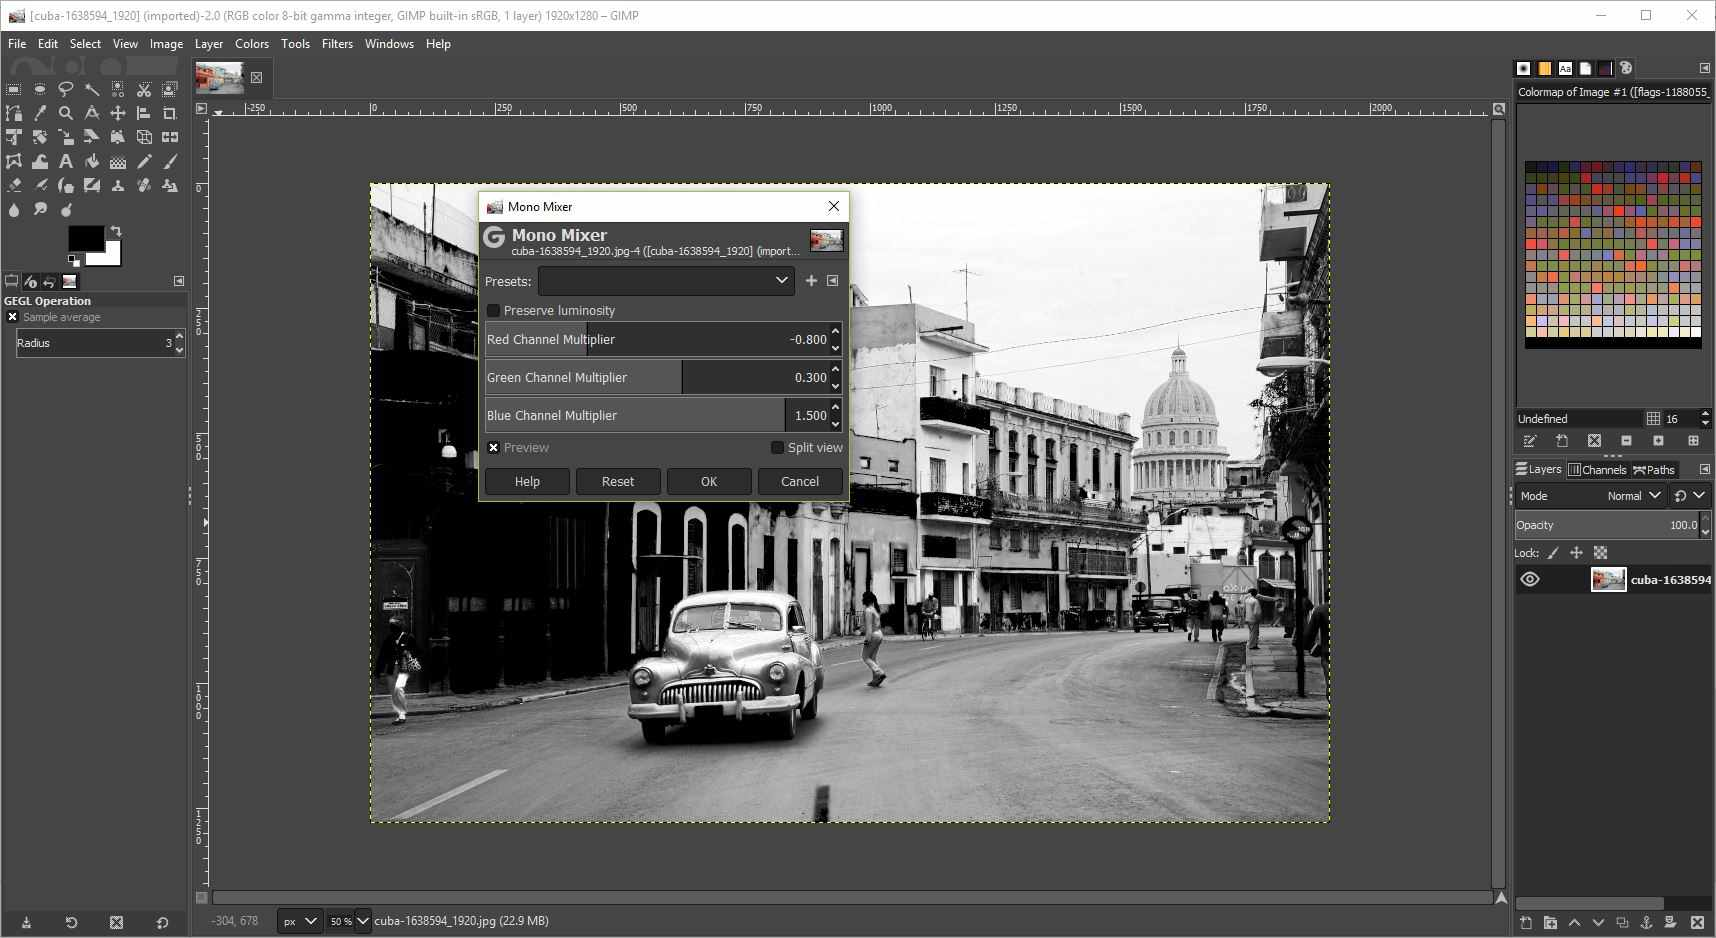 Adjust Levels of a Photo to Black and White in GIMP